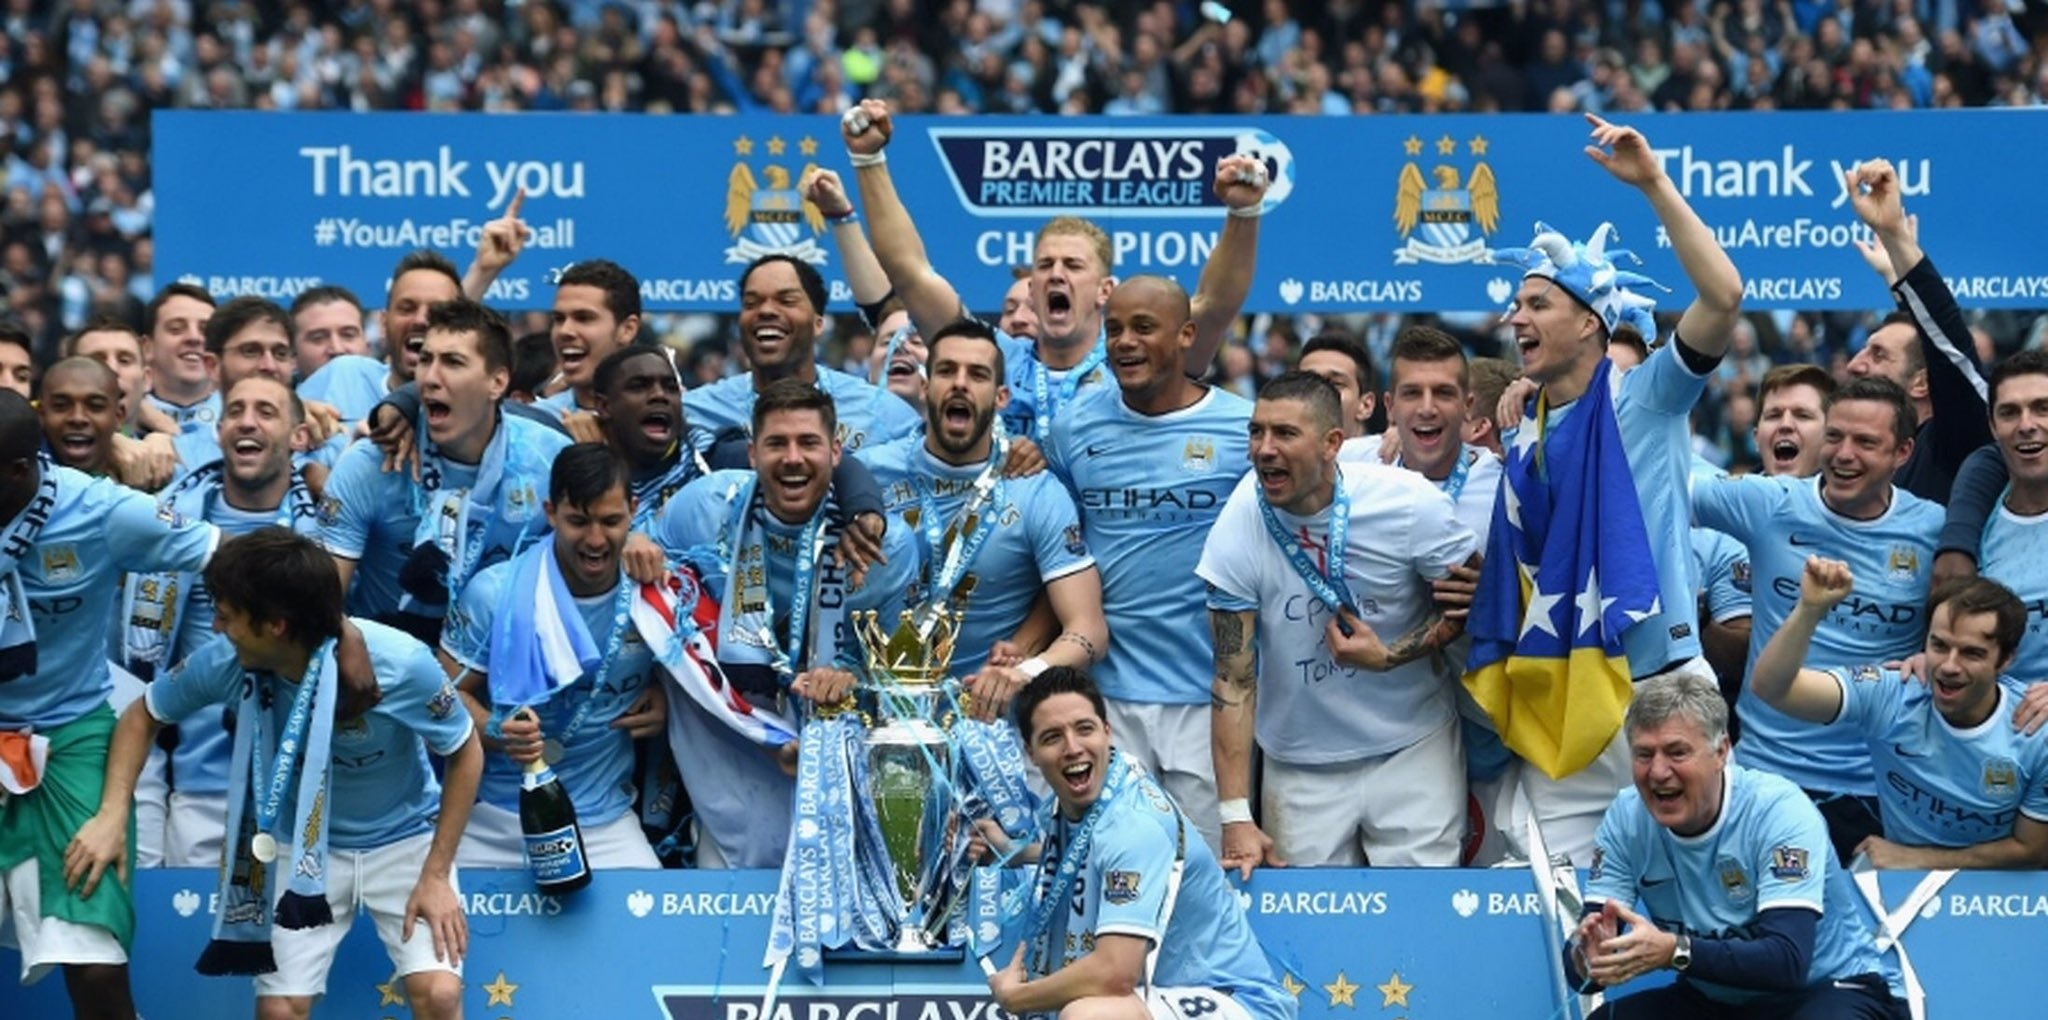 Man City accused of violating FFP via sponsorship deal trick; could hand Liverpool major benefit if found guilty